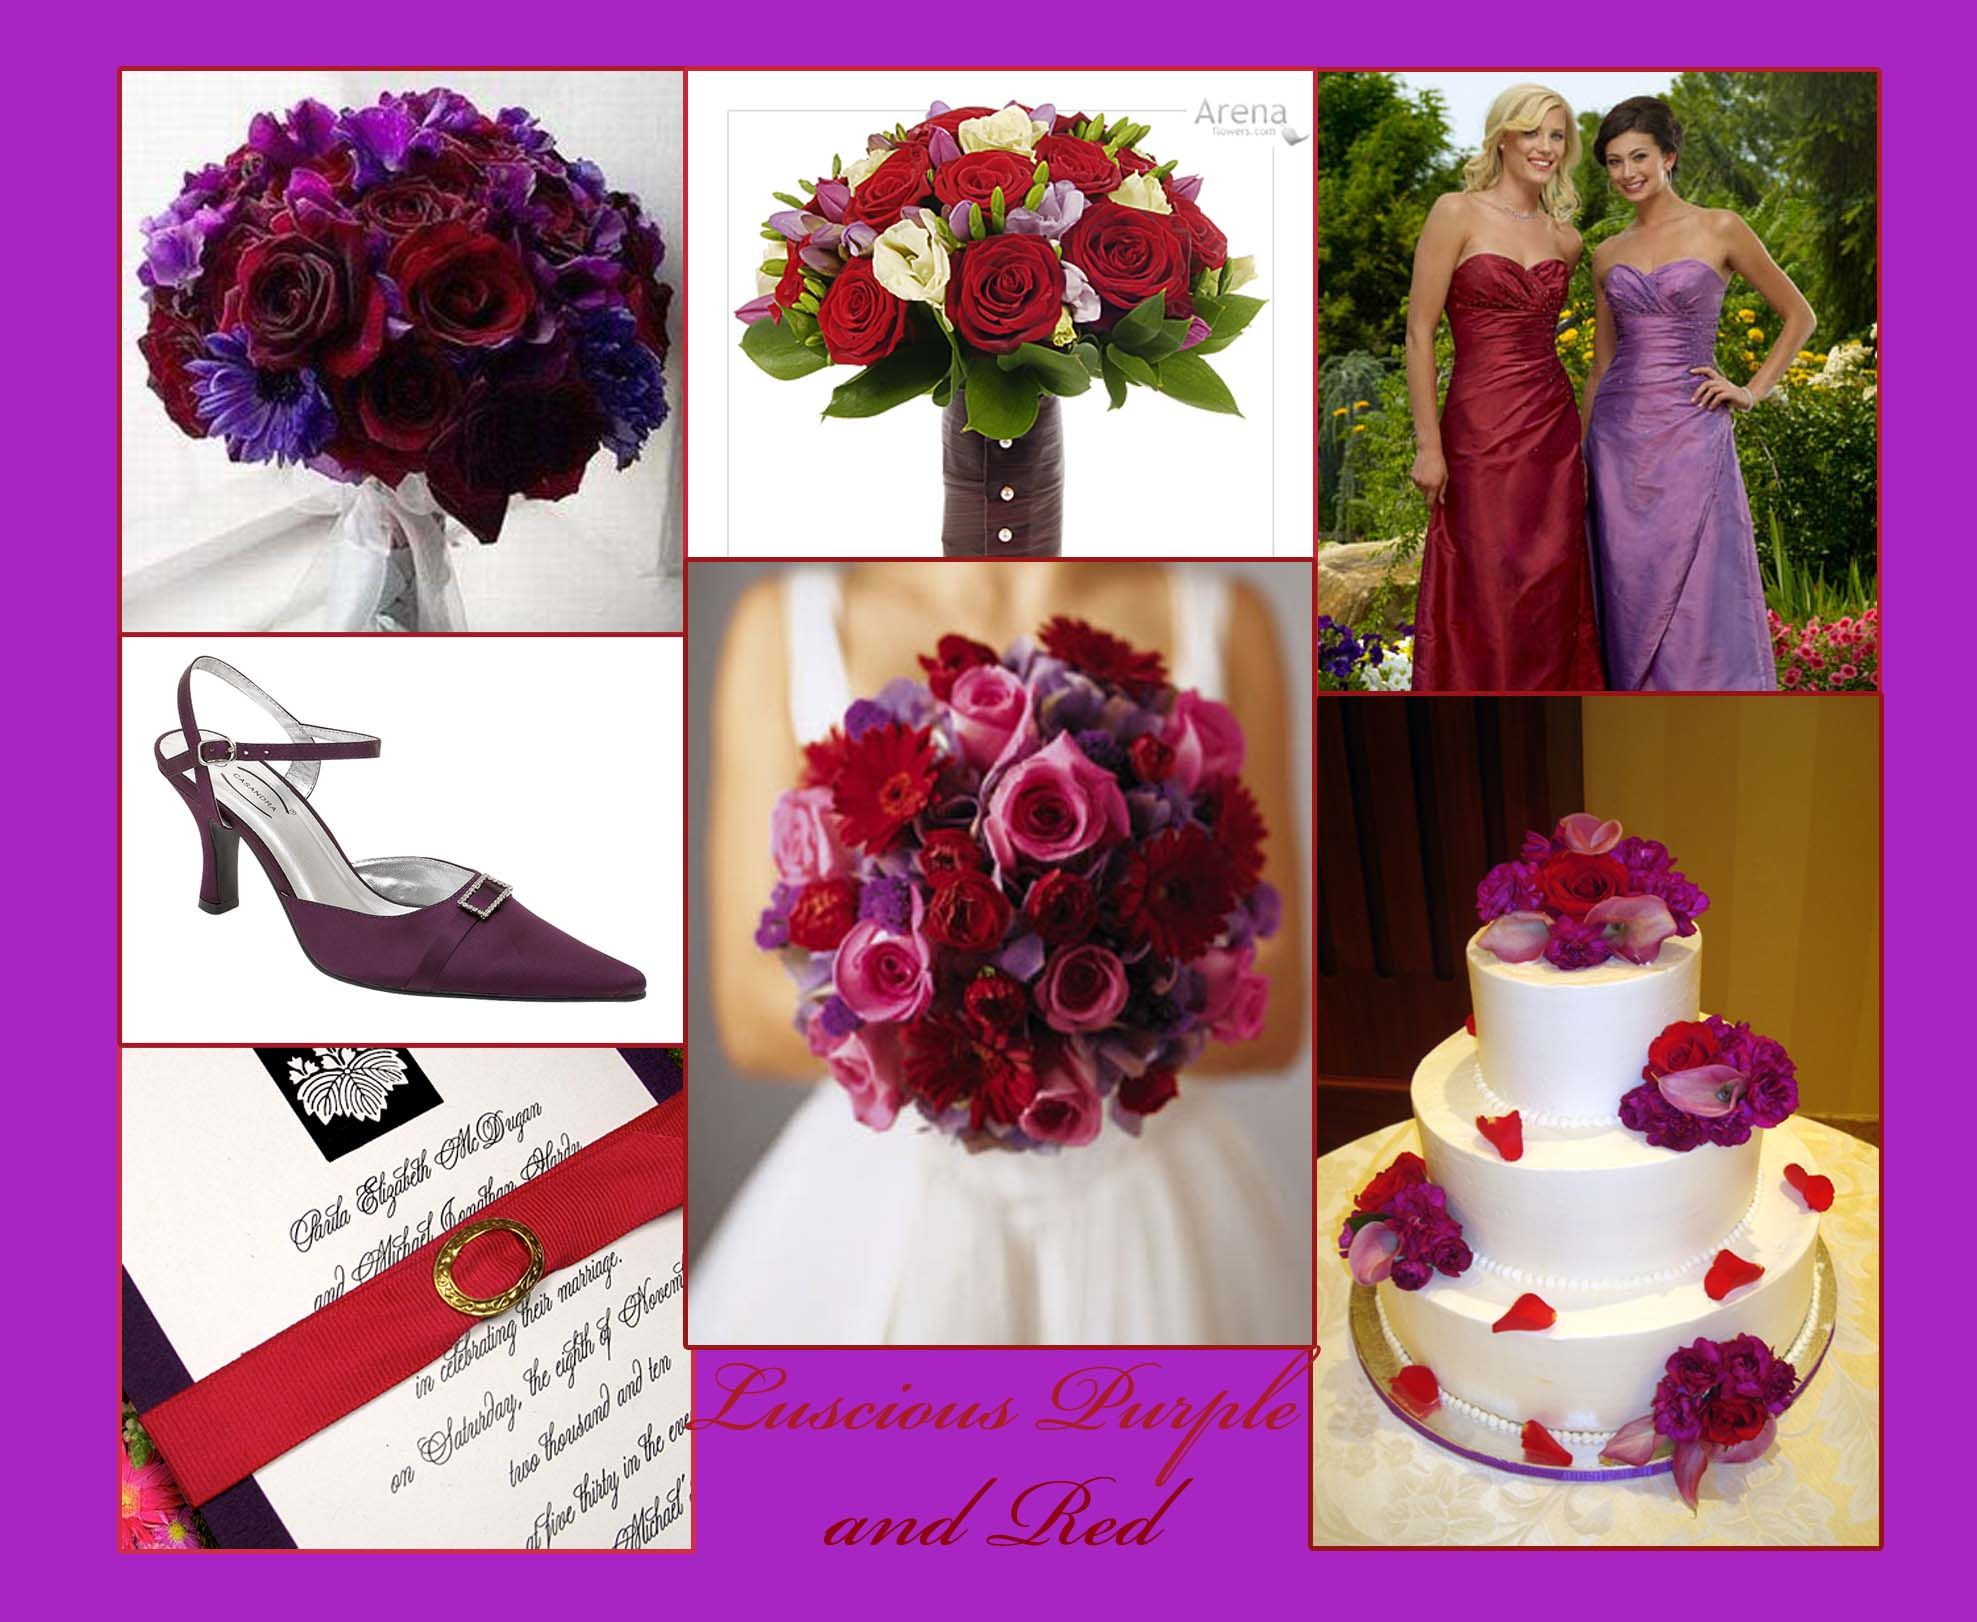 plum and red wedding | Red and Purple Wedding Inspiration Board ...